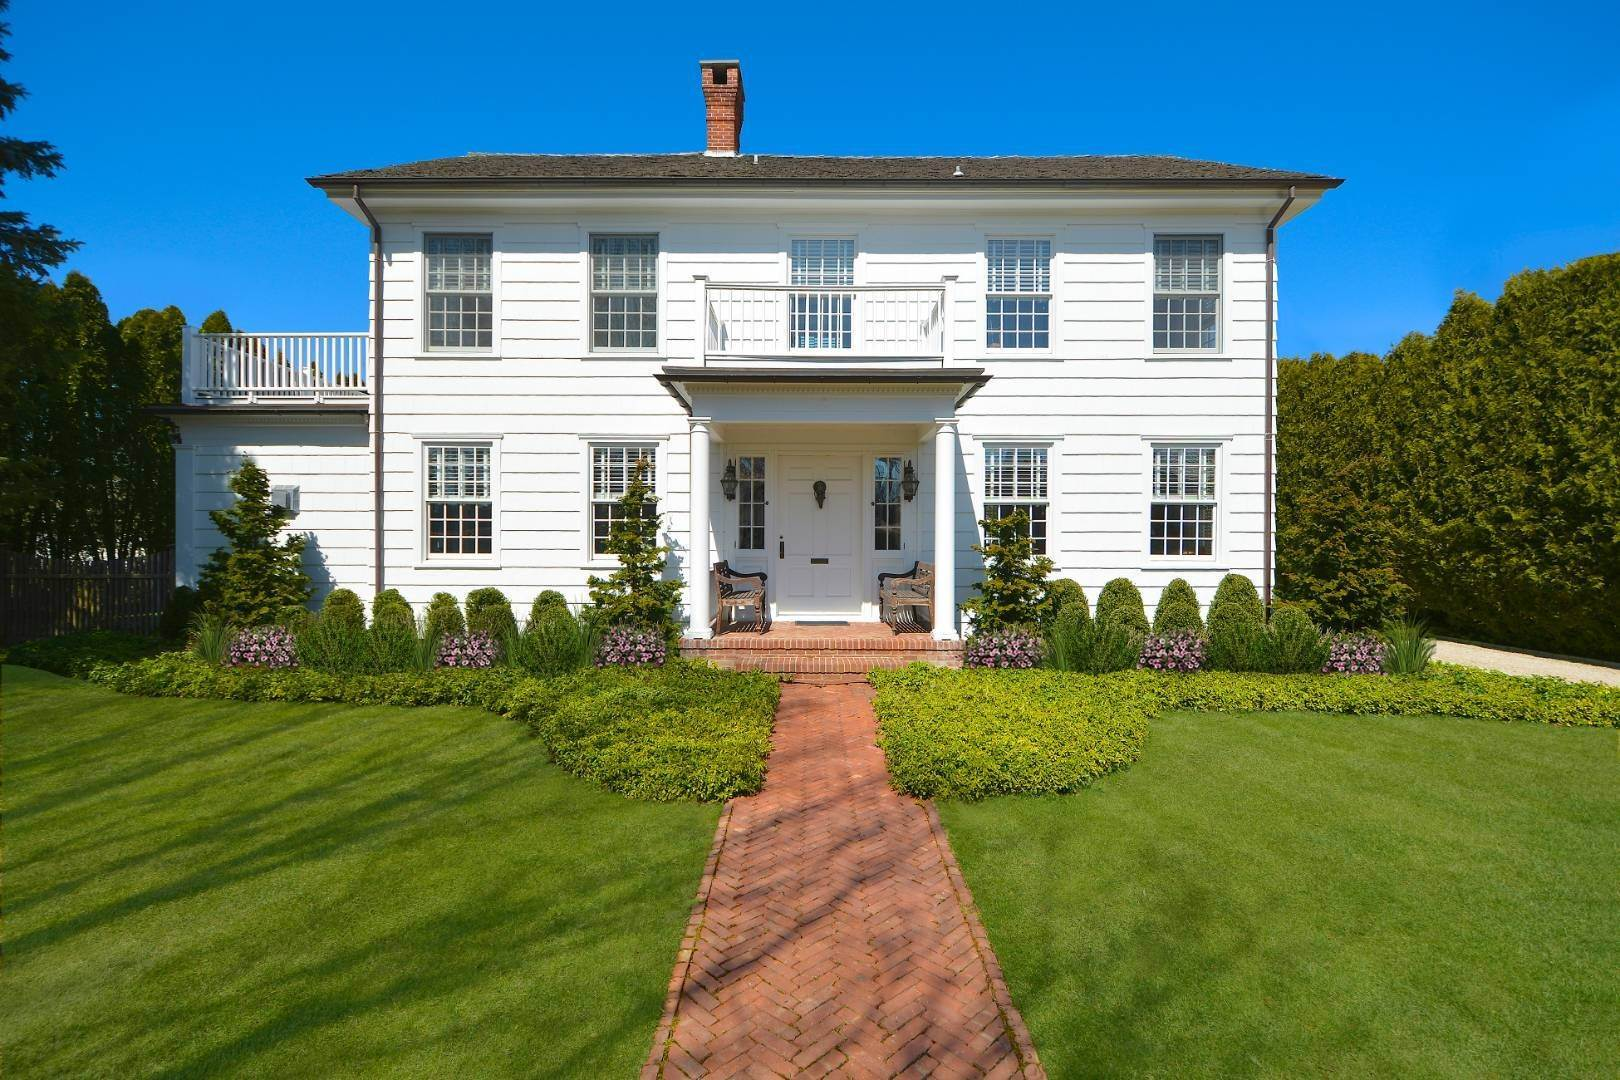 Single Family Home for Sale at Classic Herrick Road Home With Pool 75 Herrick Road, Southampton, NY 11968